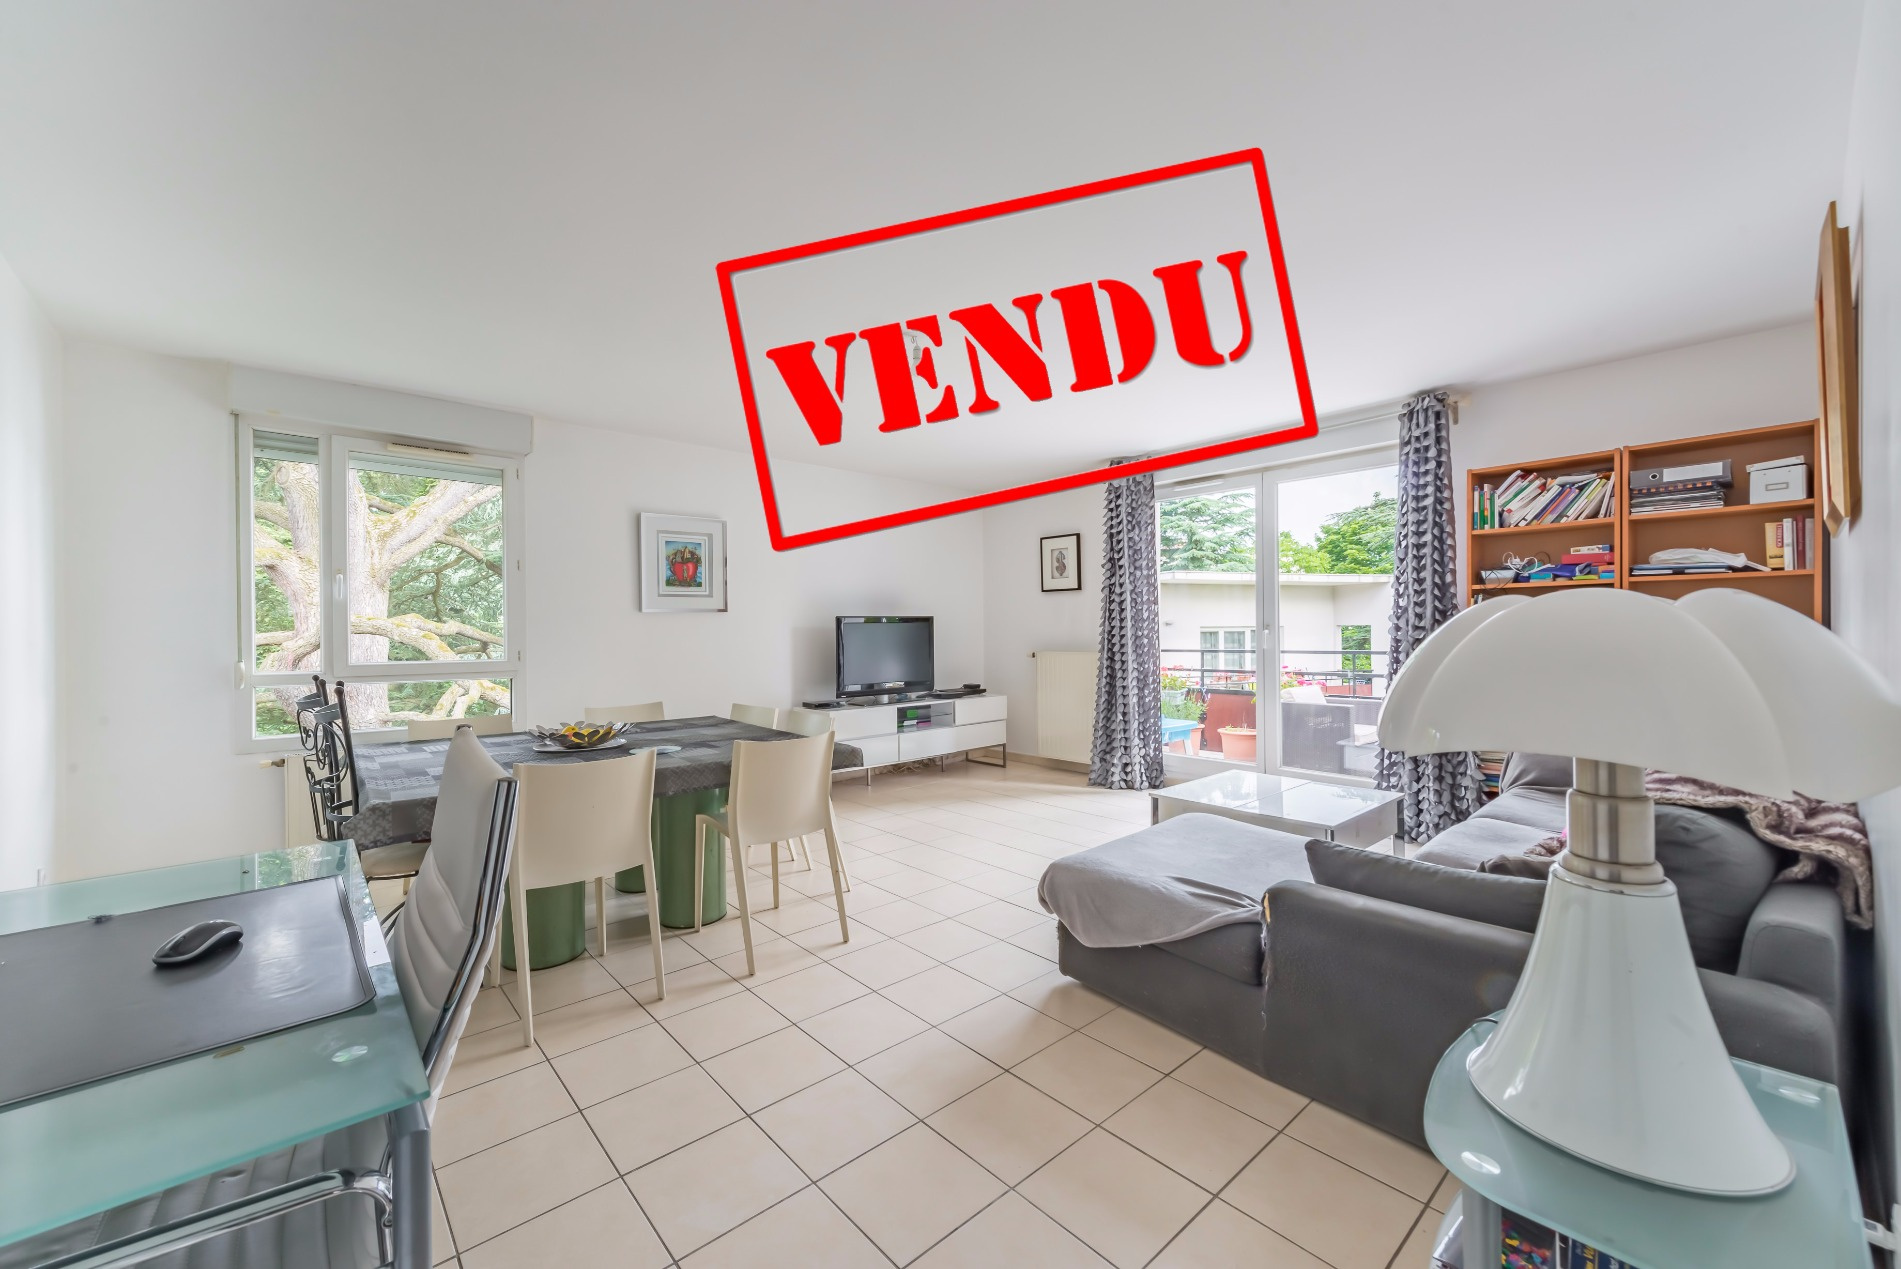 Immobilier oullins location et vente appartement et for Piscine oullins